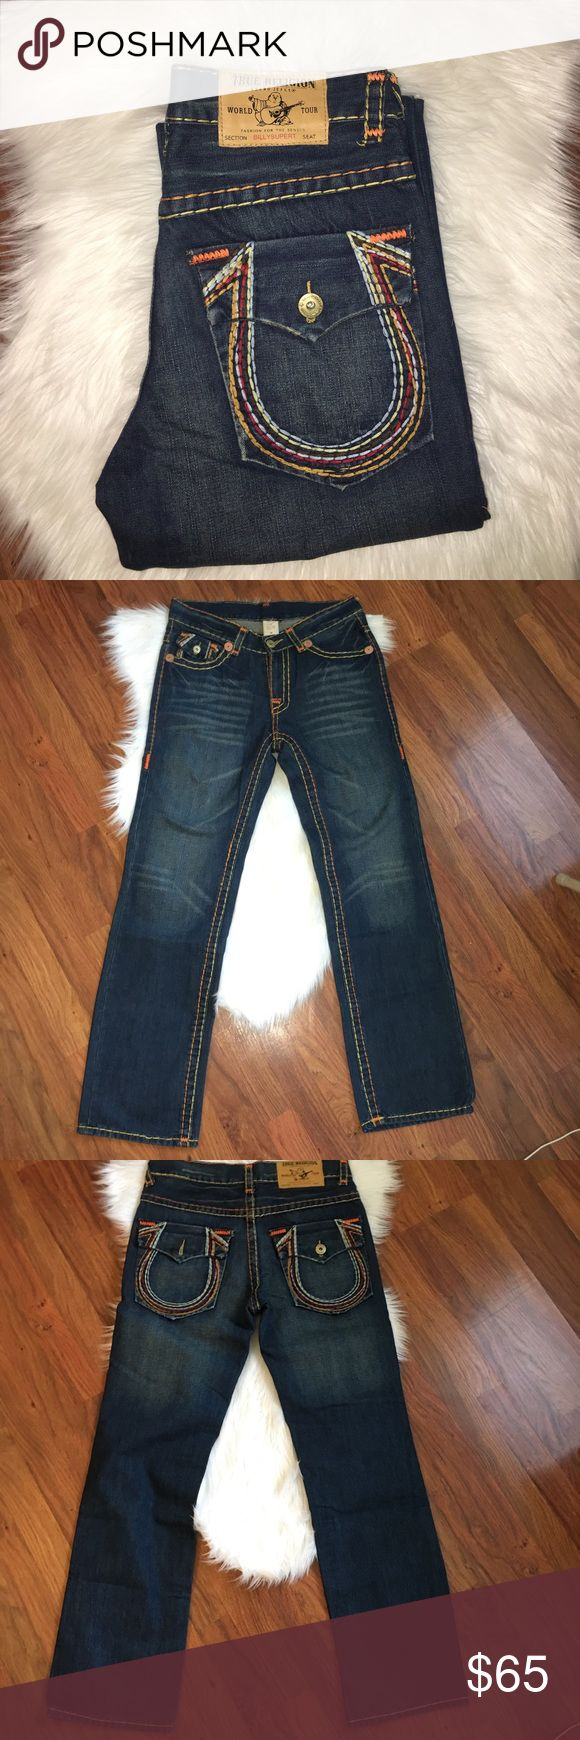 """MENS True Religion jeans size 34 These unique True religions have orange and yellow stitching. Worn very minimally, look and feel new. Waist size 34"""", inseam is about 32"""", and leg pant width is about 9 1/2"""" True Religion Jeans Straight"""